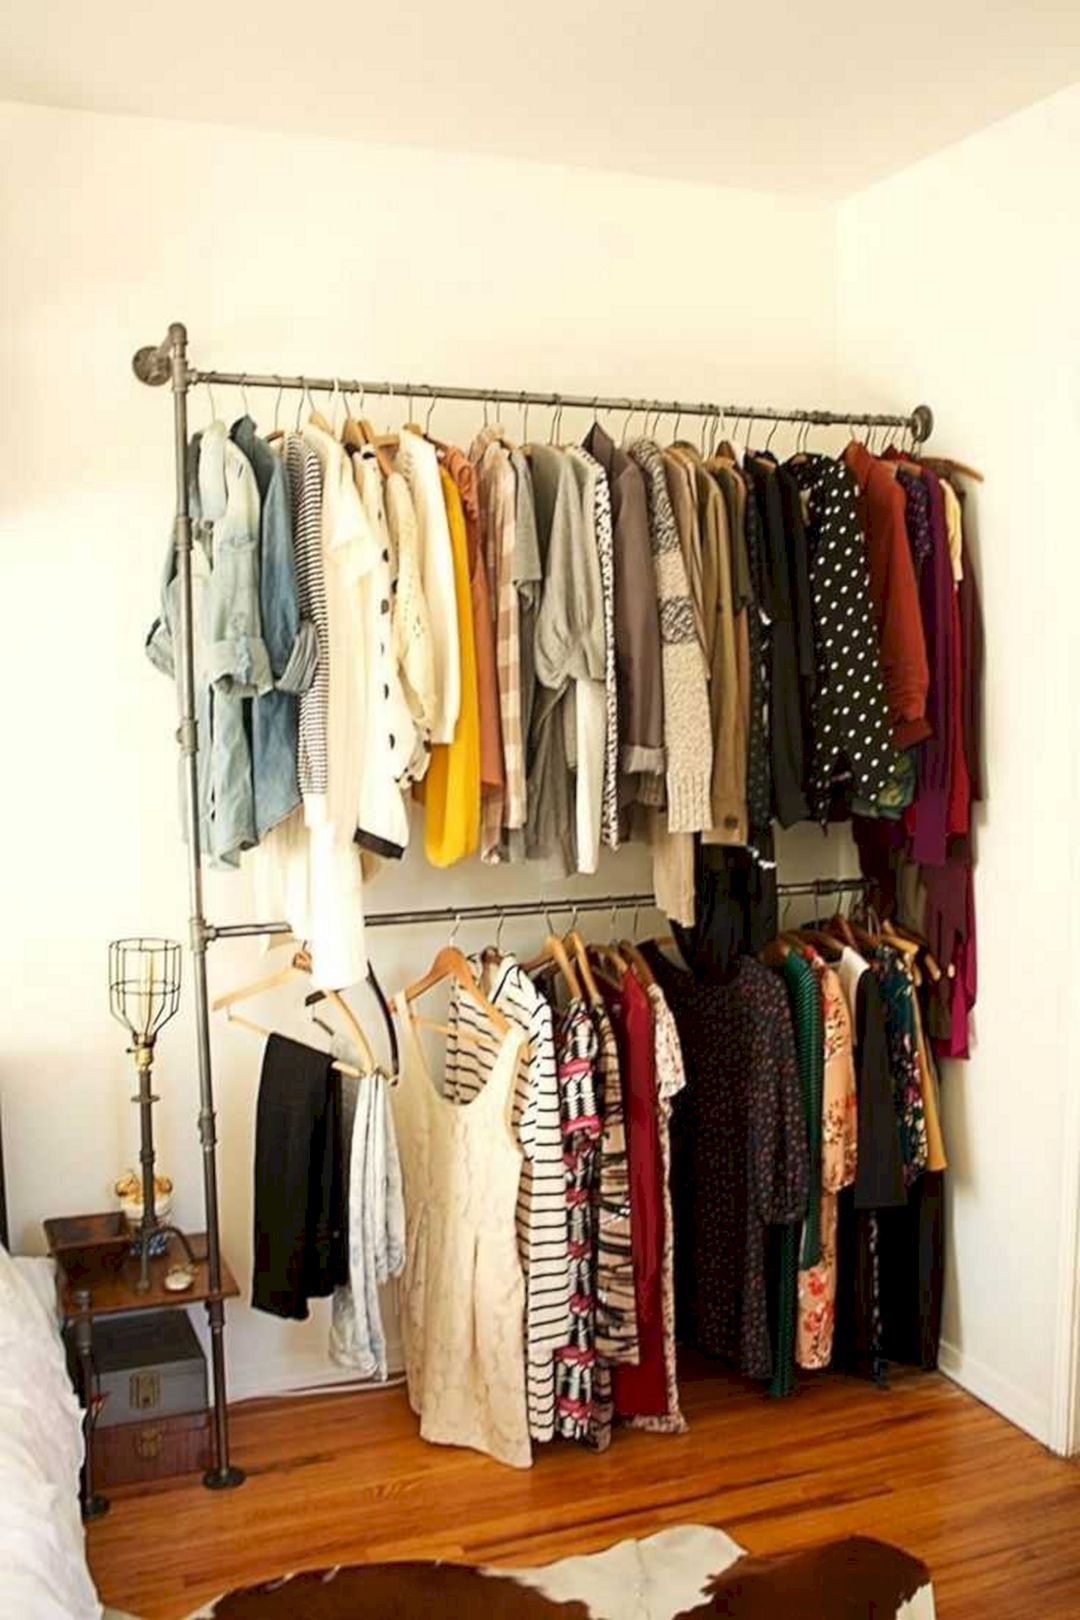 15 Diy Creative Clothes Storage Ideas For Home That You Need To